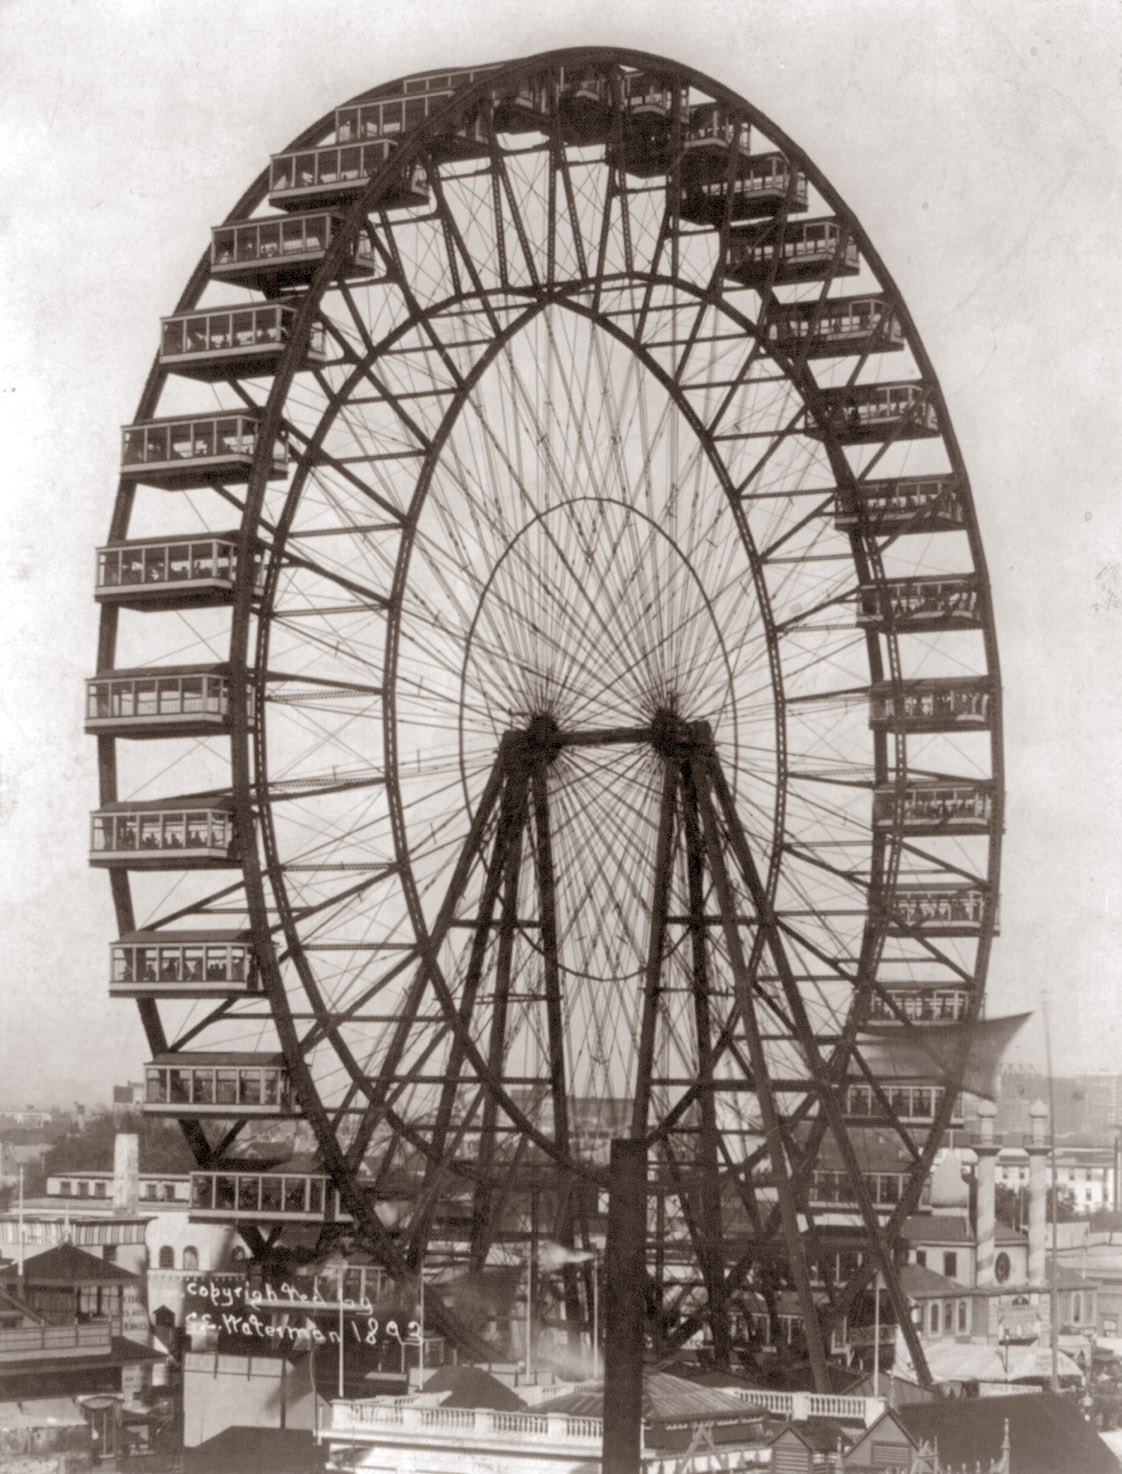 11 Biggest Ferris Wheels in the World - Insider Monkey